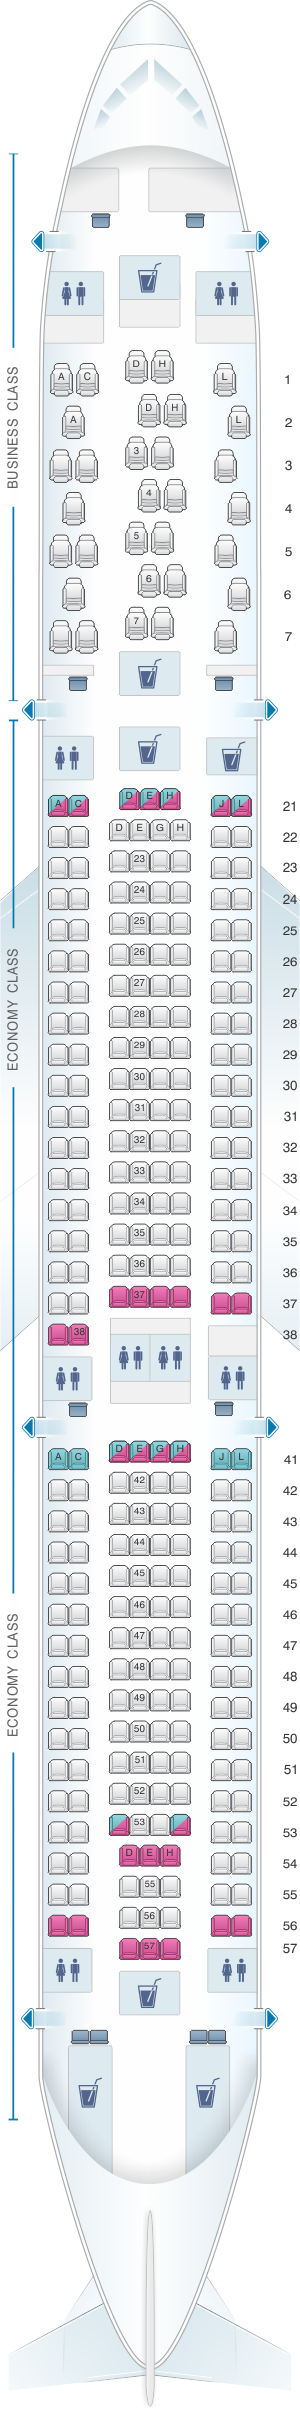 Seat map for Finnair Airbus A330 300 297PAX